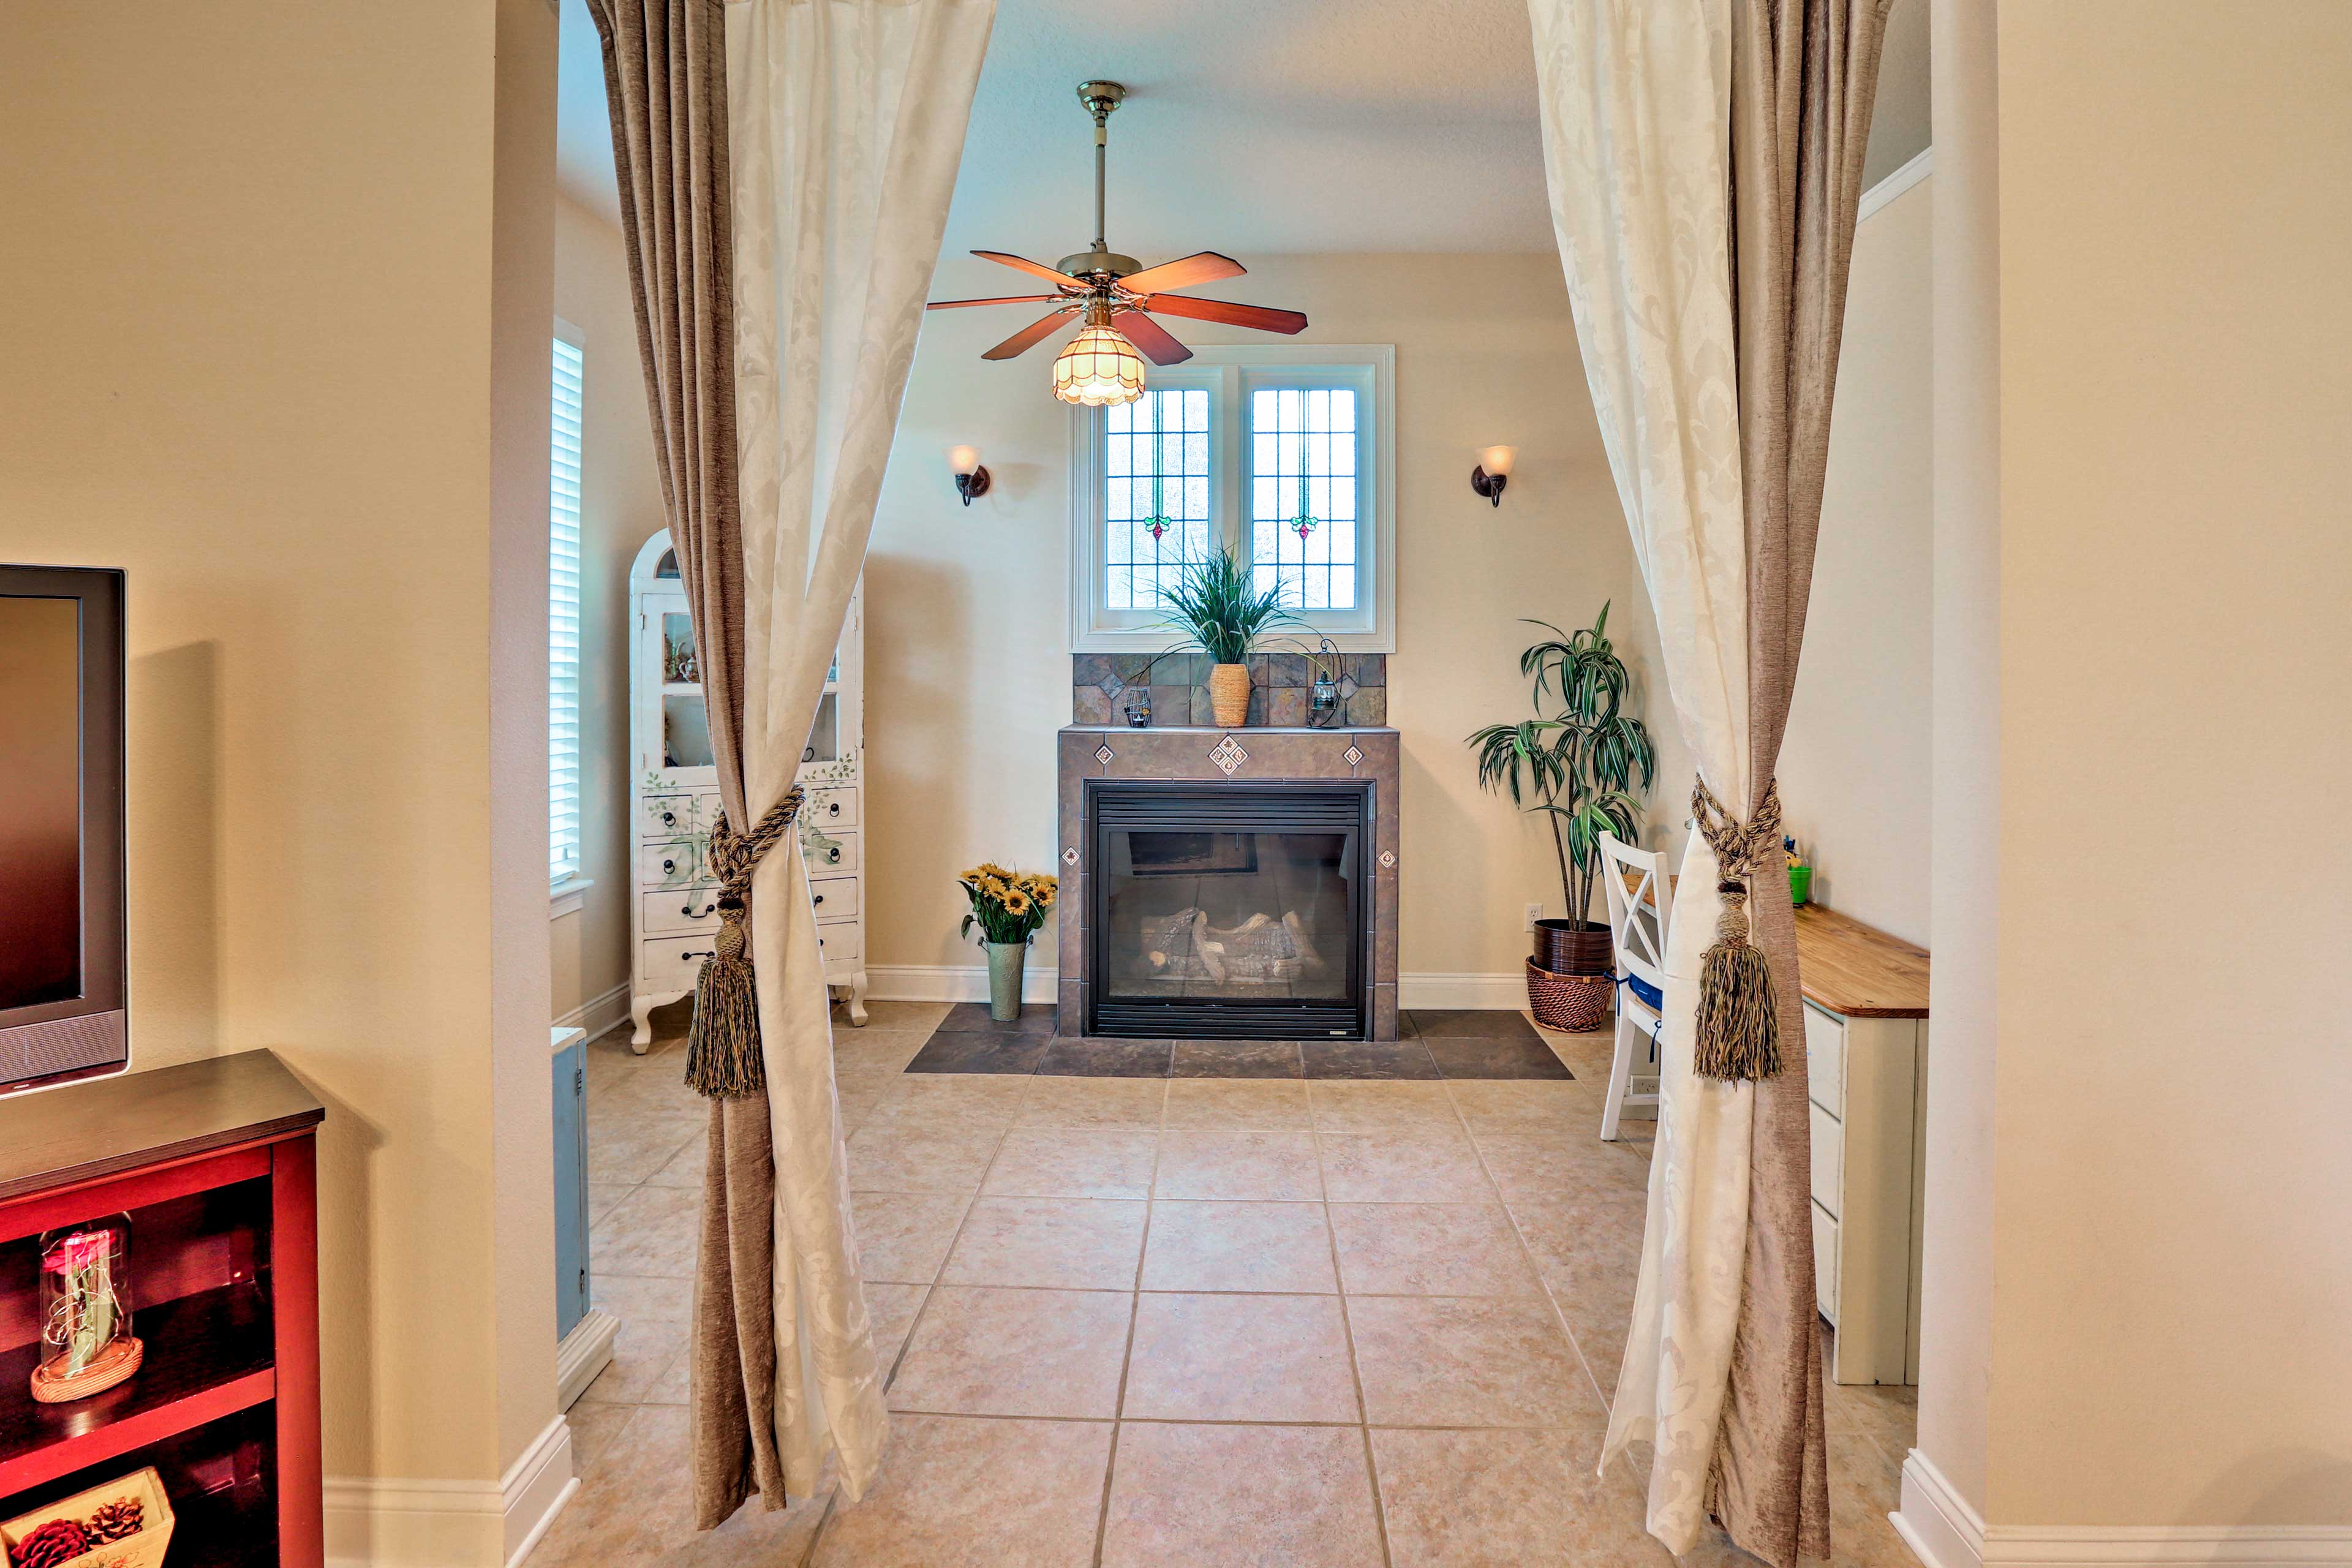 Warm up on cooler nights with the gas fireplace.